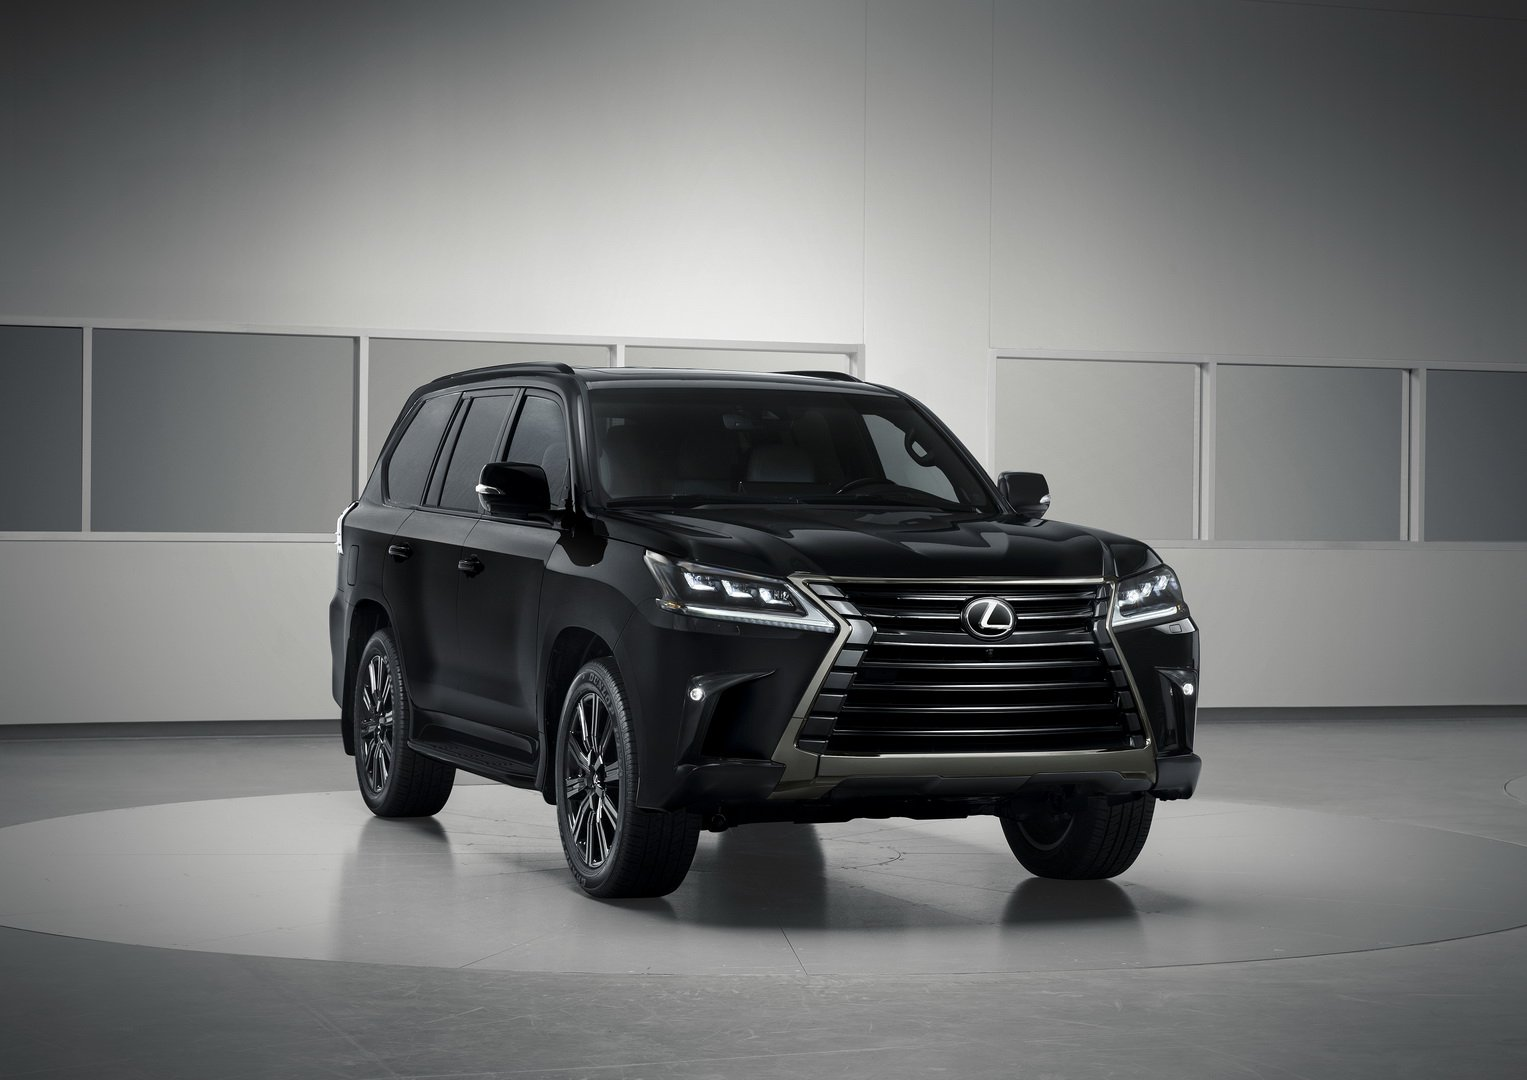 Lexus LX Inspiration Series (1)